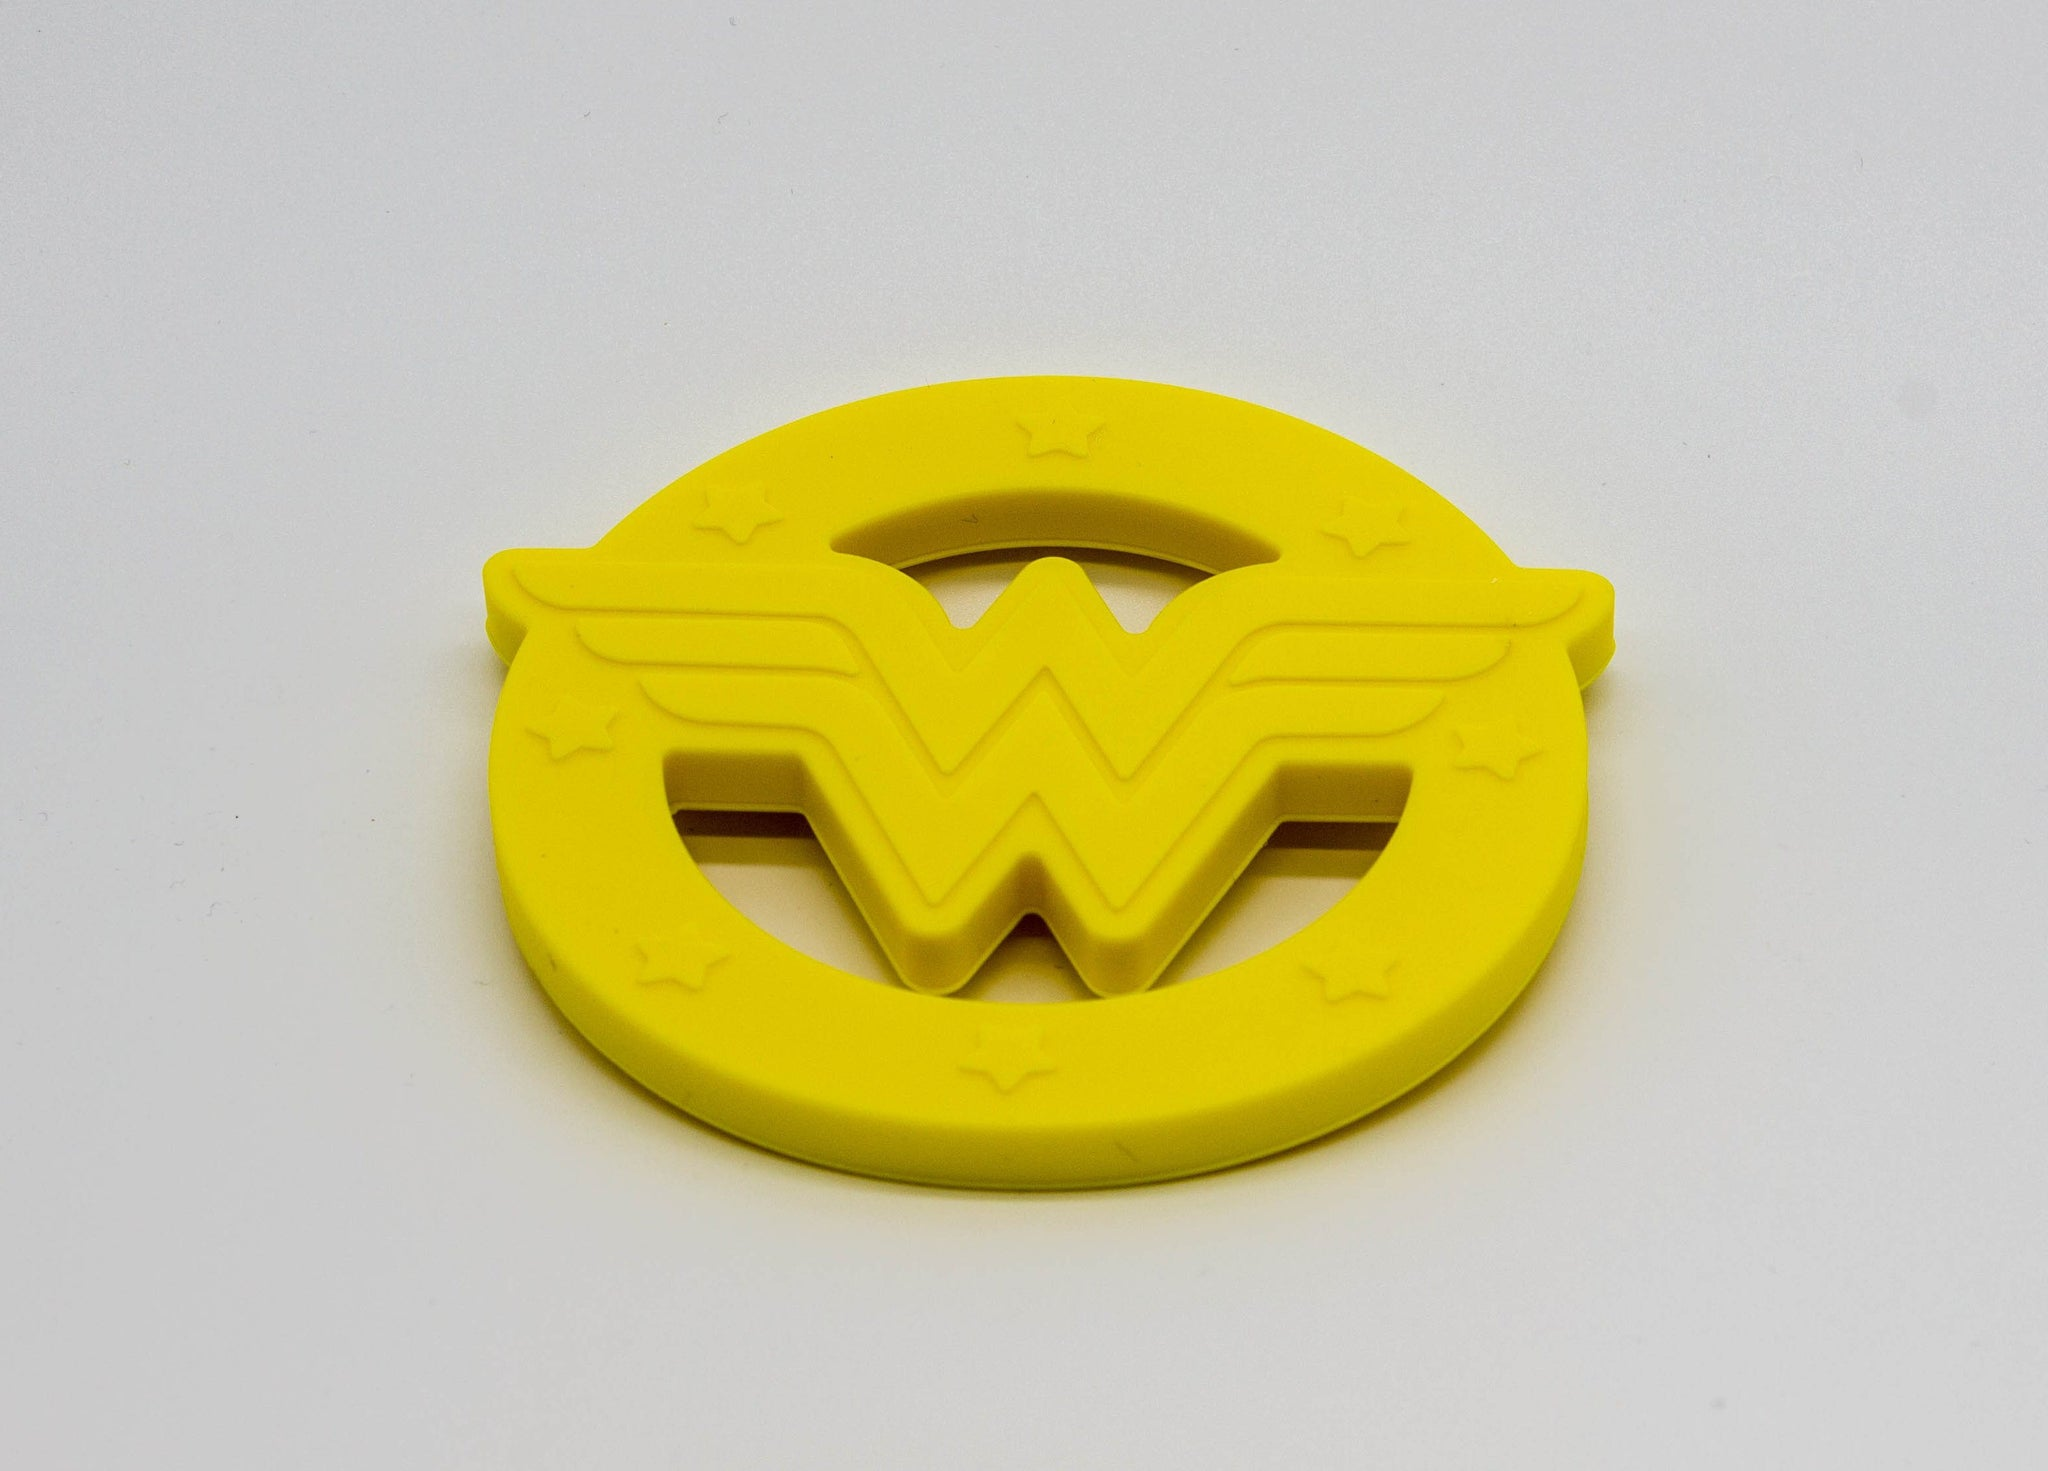 Bumkins Wonder Woman Teether - Three LiL Monkeys Three LiL Monkeys